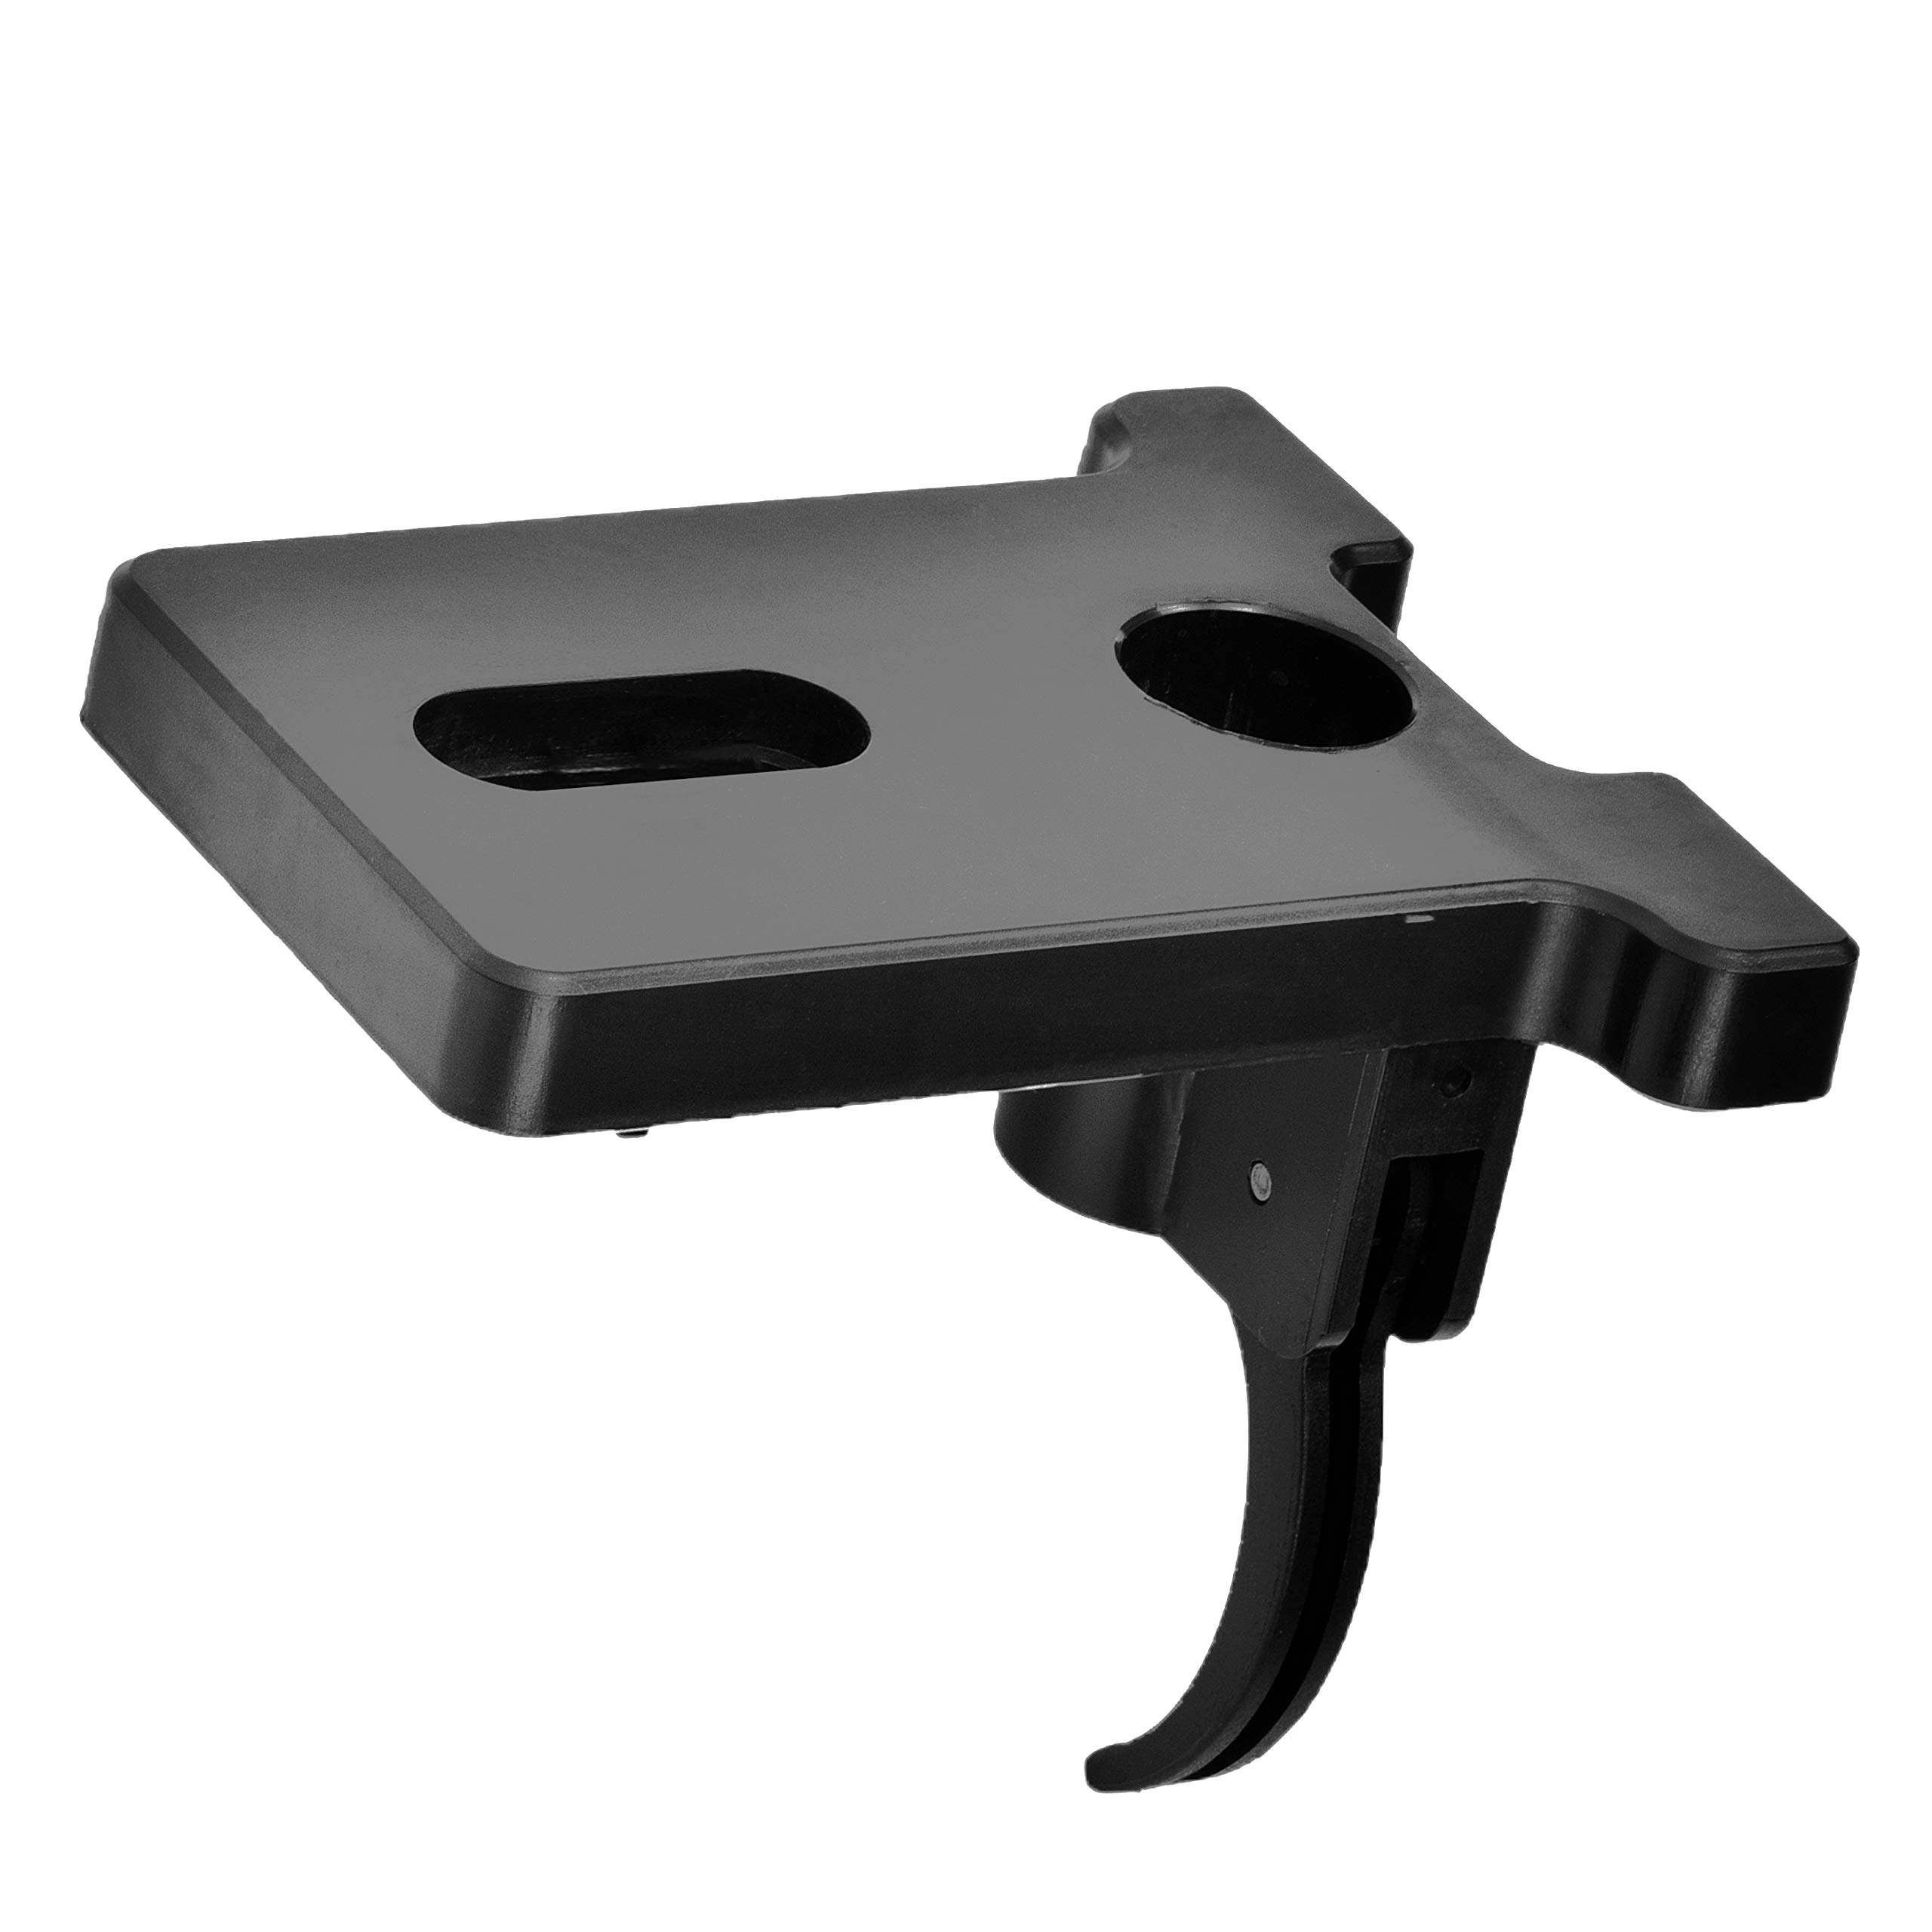 AdirPro Telescoping Pole Mounting Platform - For AdirPro 790-77 - Heavy Duty Durable and Adjustable Mount Mechanism - For Personal & Professional Use